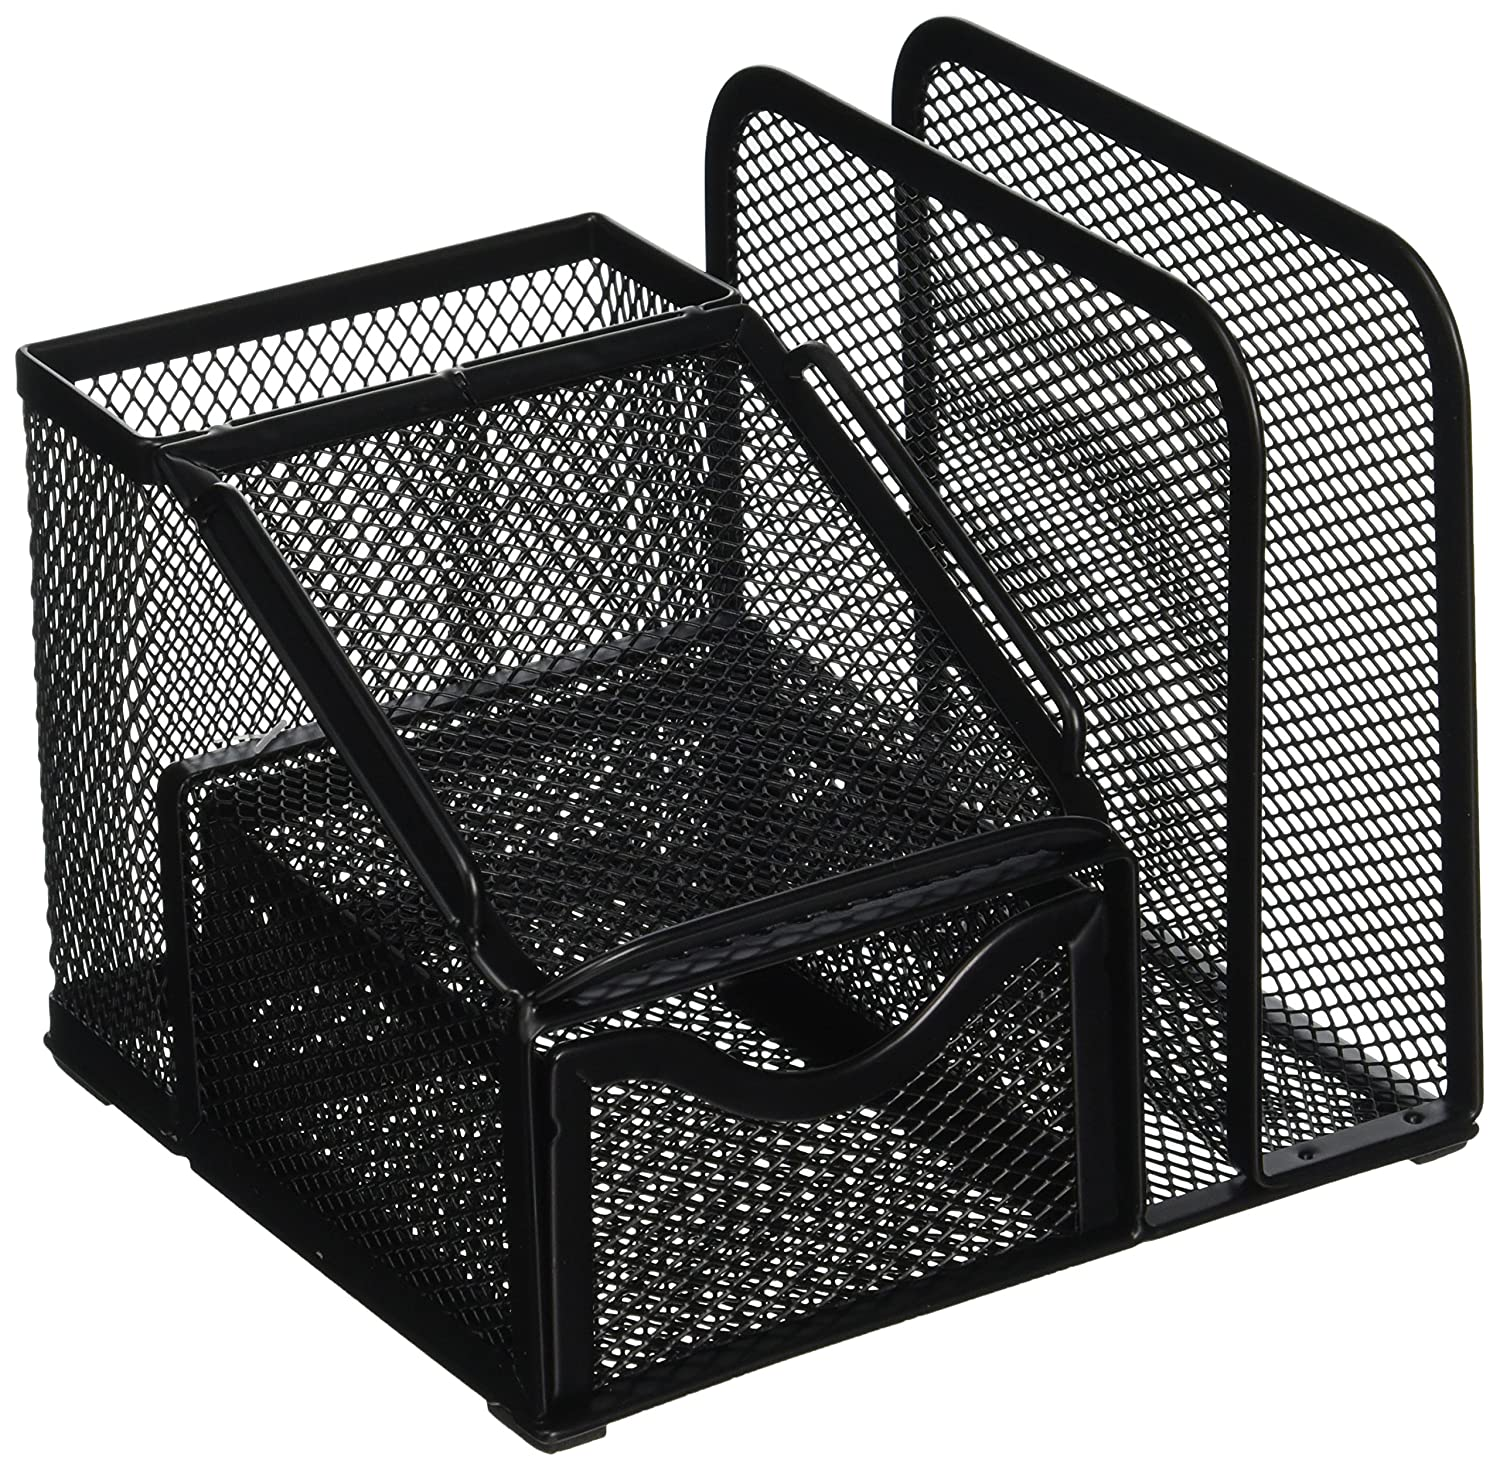 Greenco Mesh Office Supplies Desk Organizer with Note Pad Holder, Black Homeco GRC2524